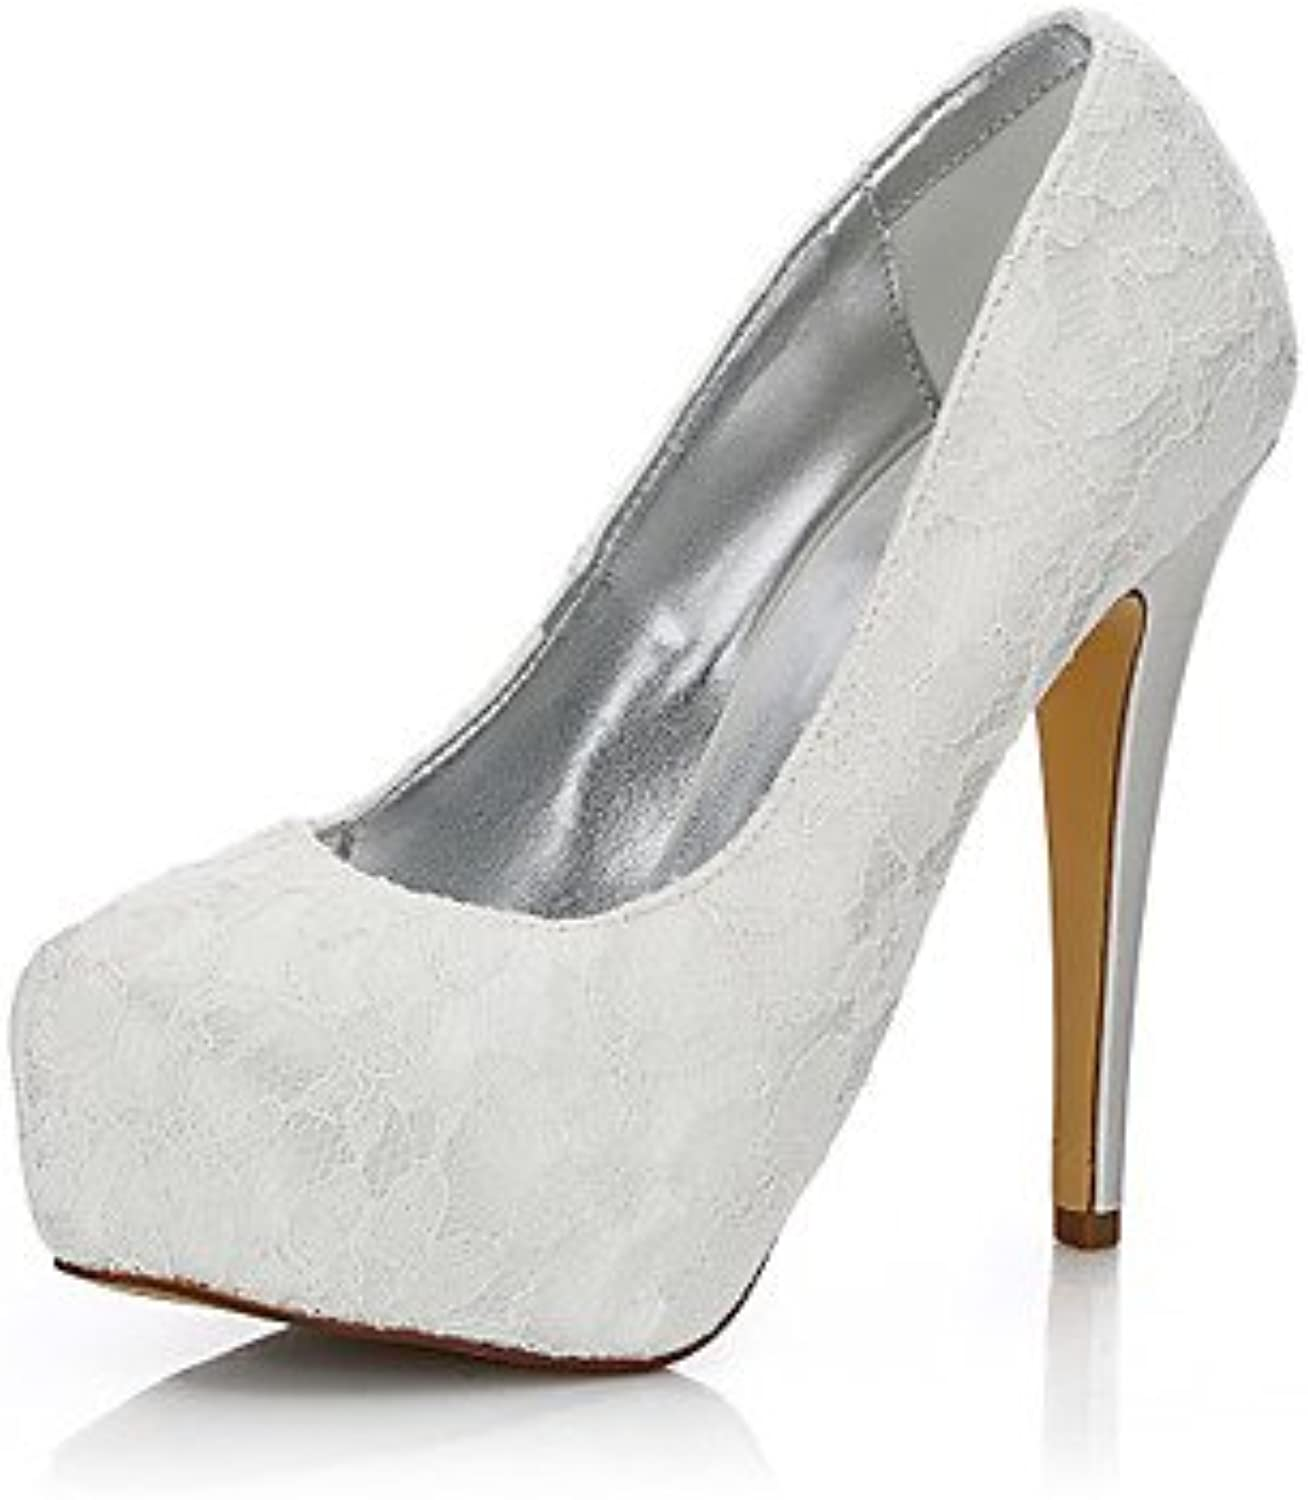 Zormey Women'S Wedding Shoes Fall Winter Club Shoes Comfort Silk Tulle Wedding Outdoor Office &Amp; Career Party...